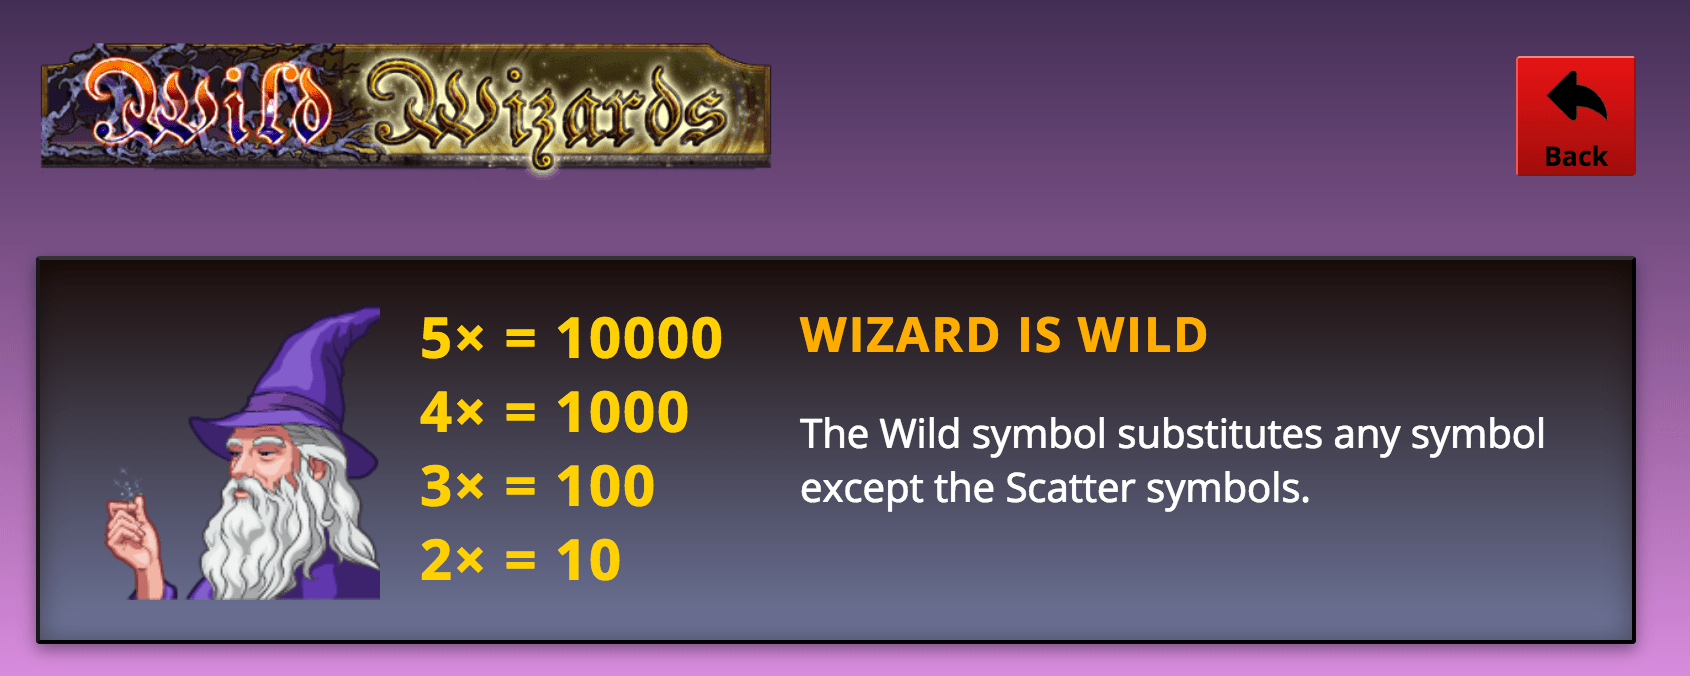 wild wizards game online help